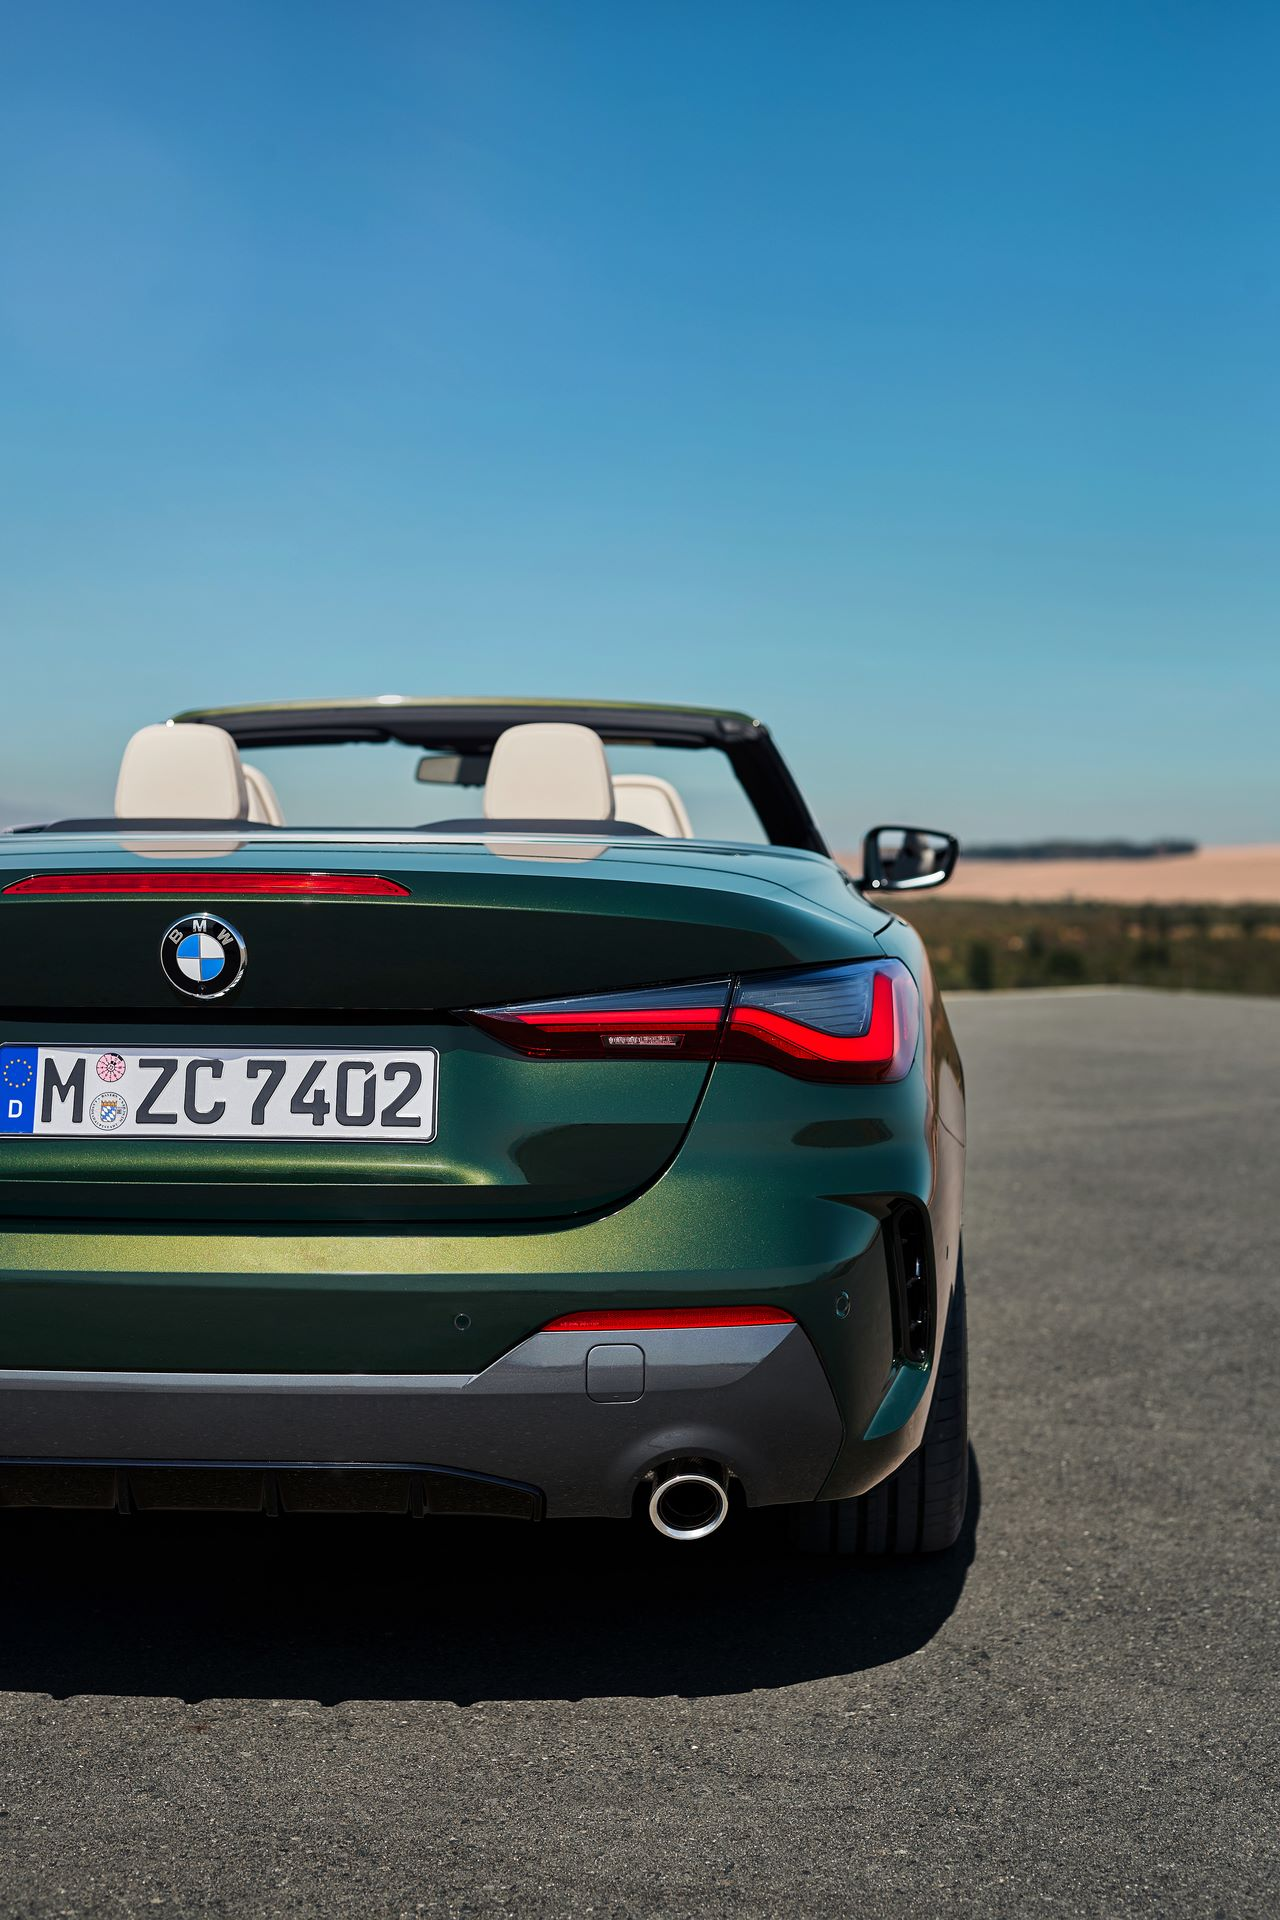 BMW-4-Series-Convertible-2021-49